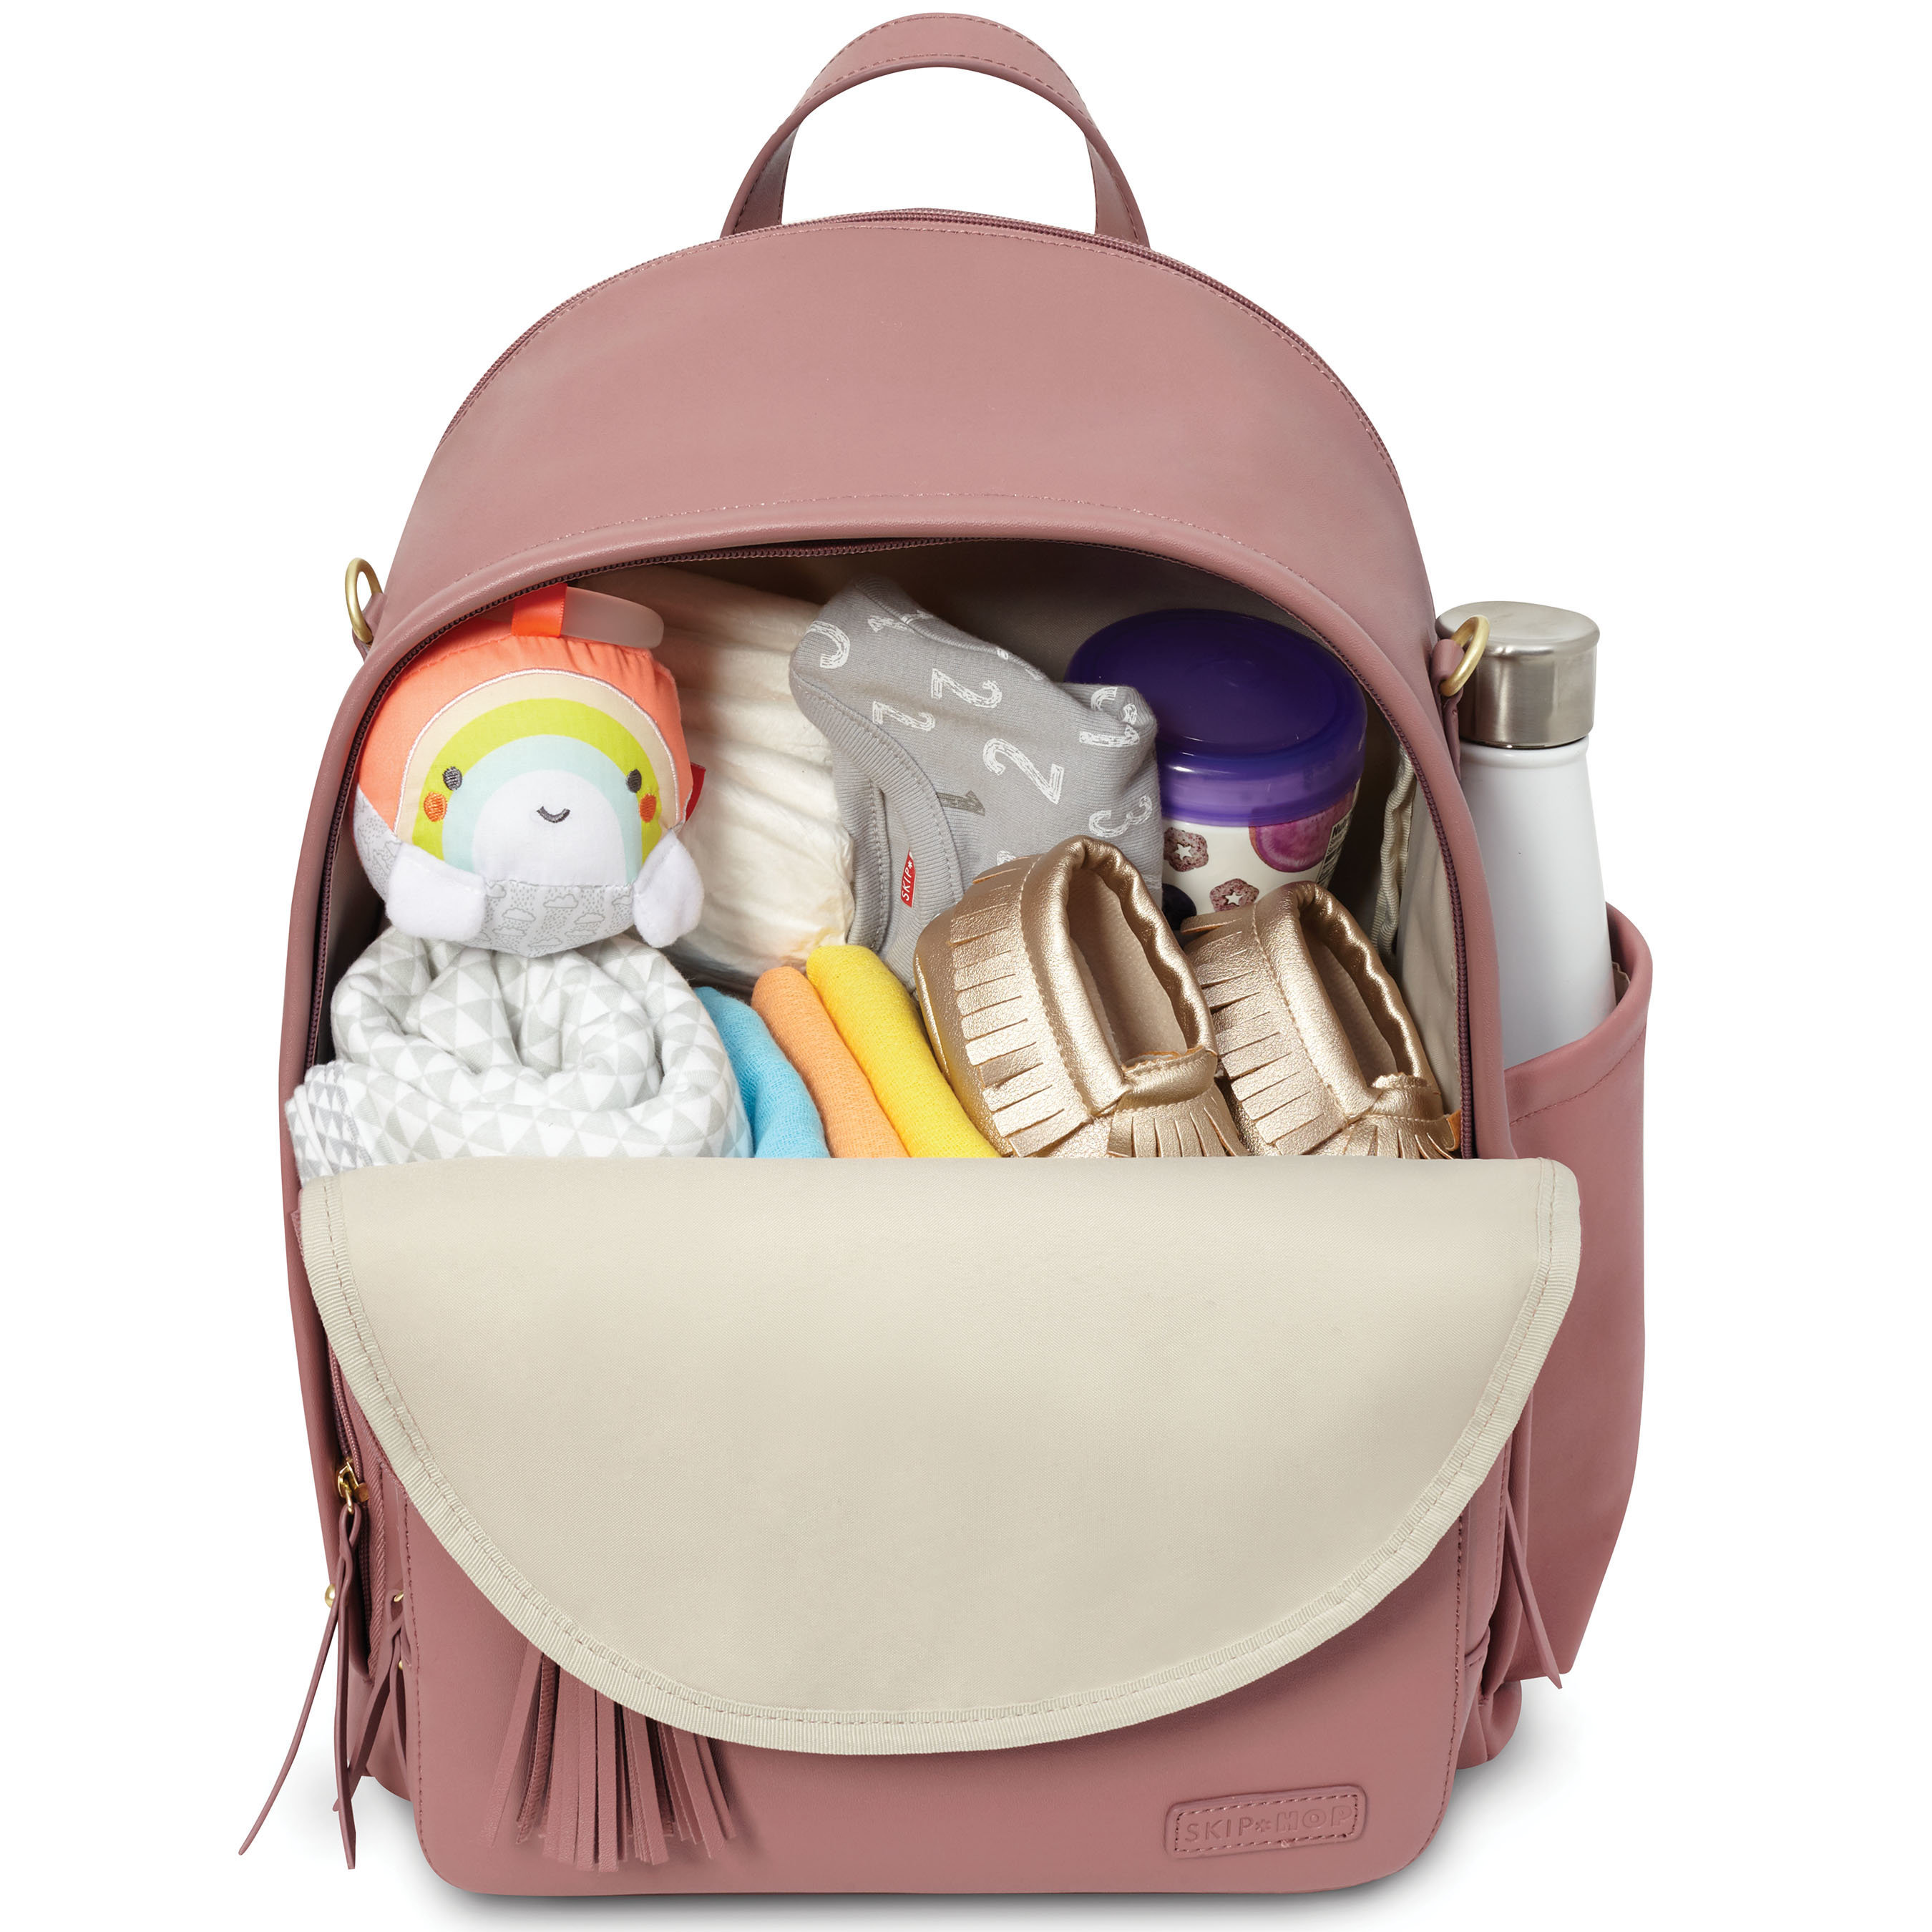 Skip Hop Greenwich Diaper Bag Backpack in Dusty Rose filled with diaper bag essentials.